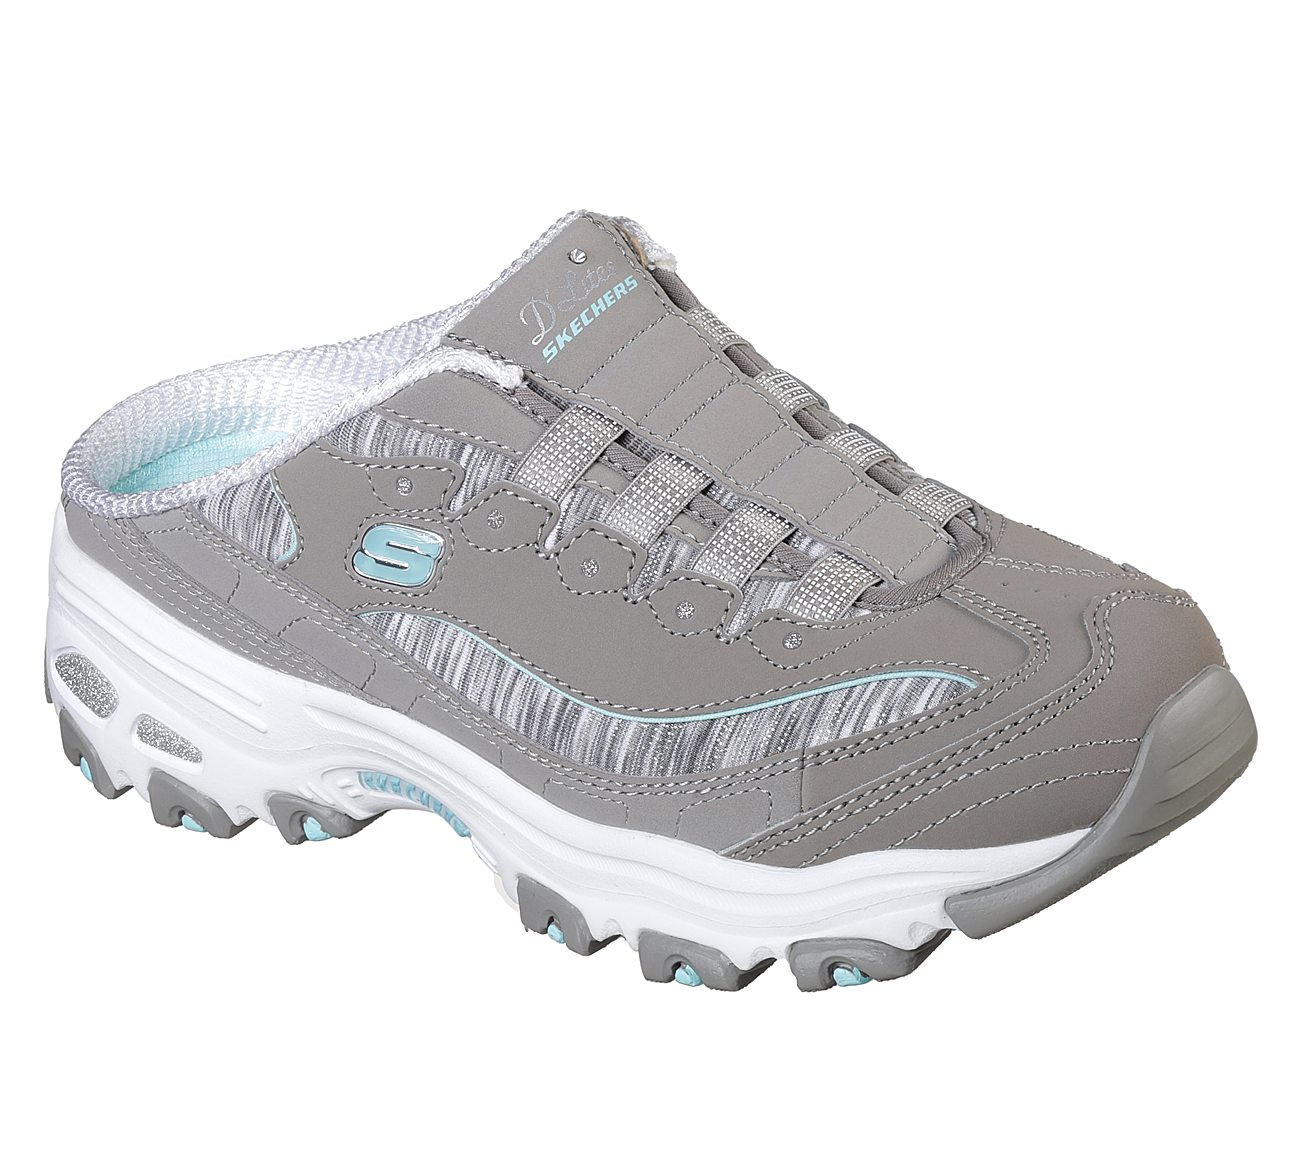 Skechers D'Lites Spark ... Interest Women's Slip On Shoes sale pre order cheap fast delivery sale low shipping fee bQ1pCj